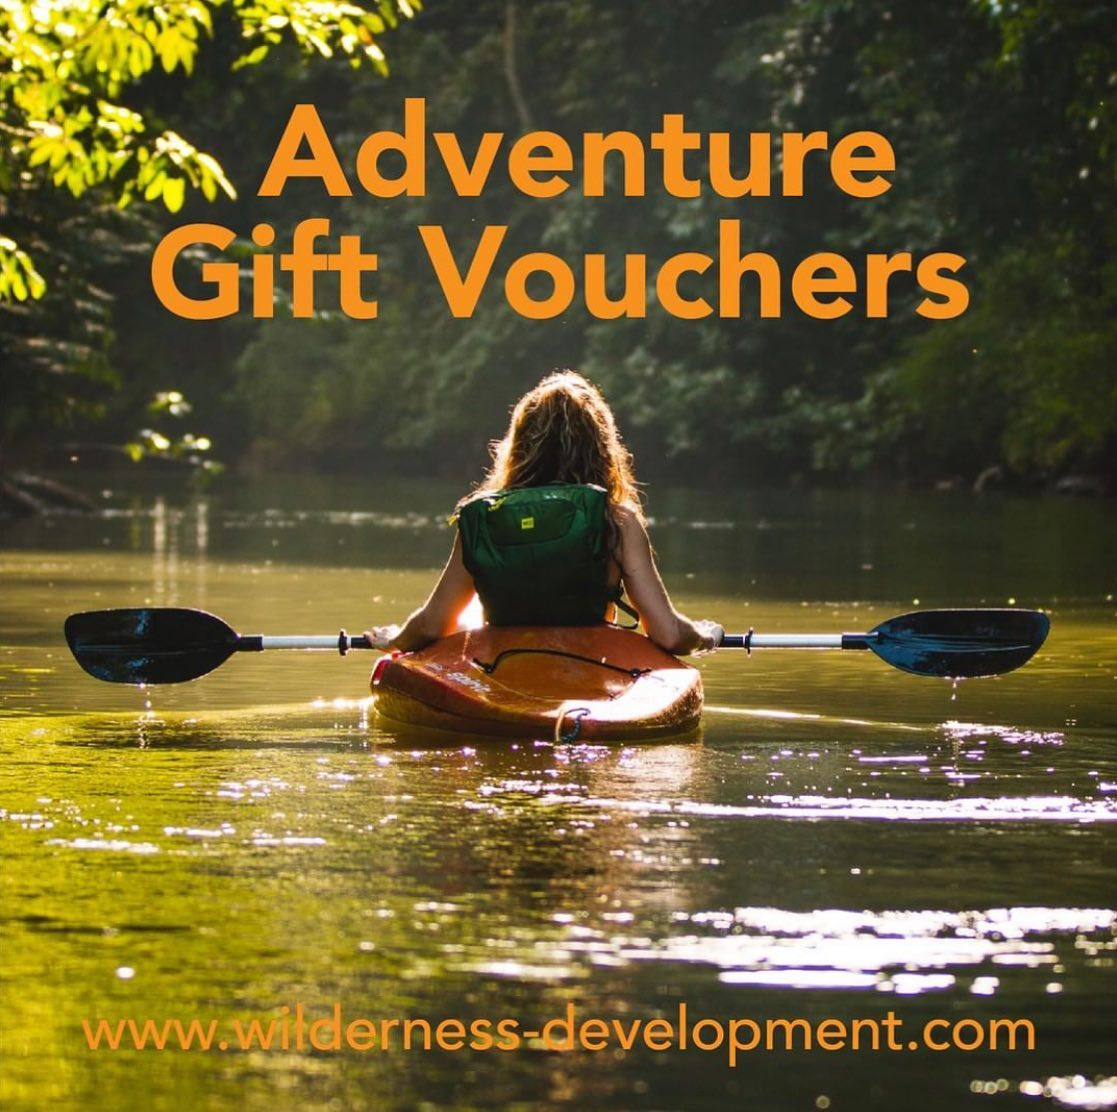 Started your Xmas shopping yet?? Give the gift of adventure this year, and have something excitin…